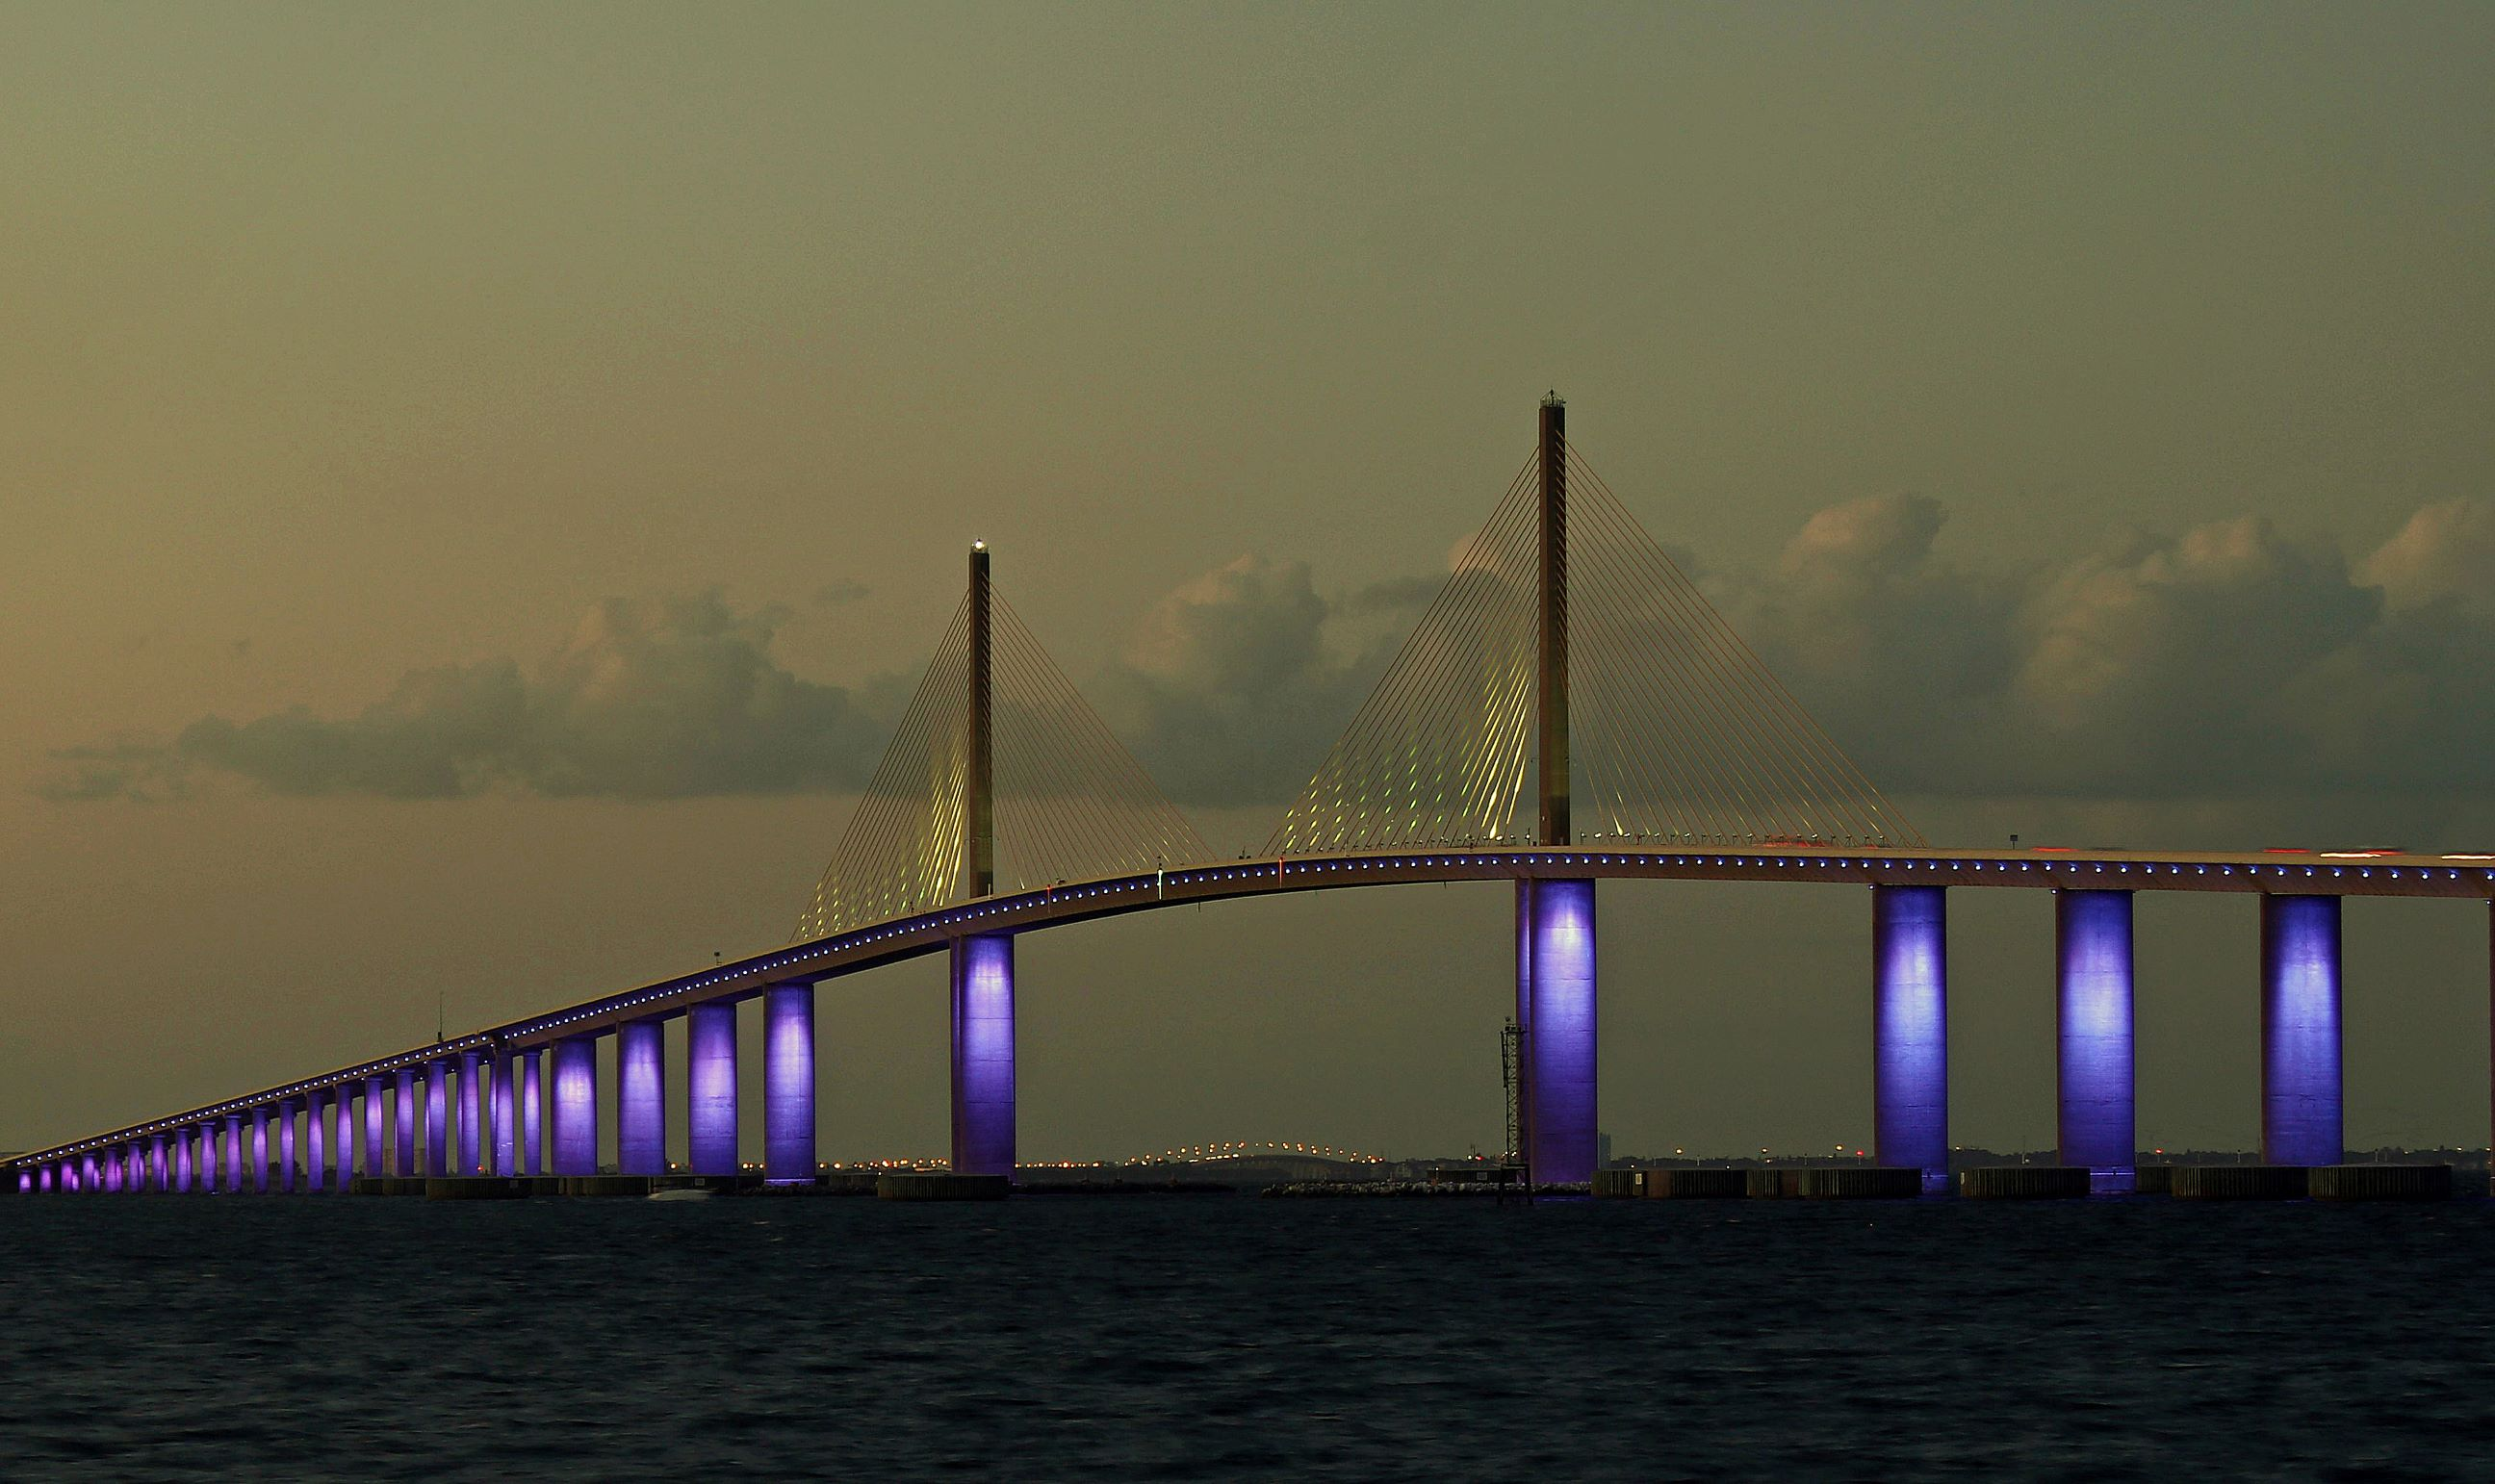 skyway bridge 200 (2)pp.jpg